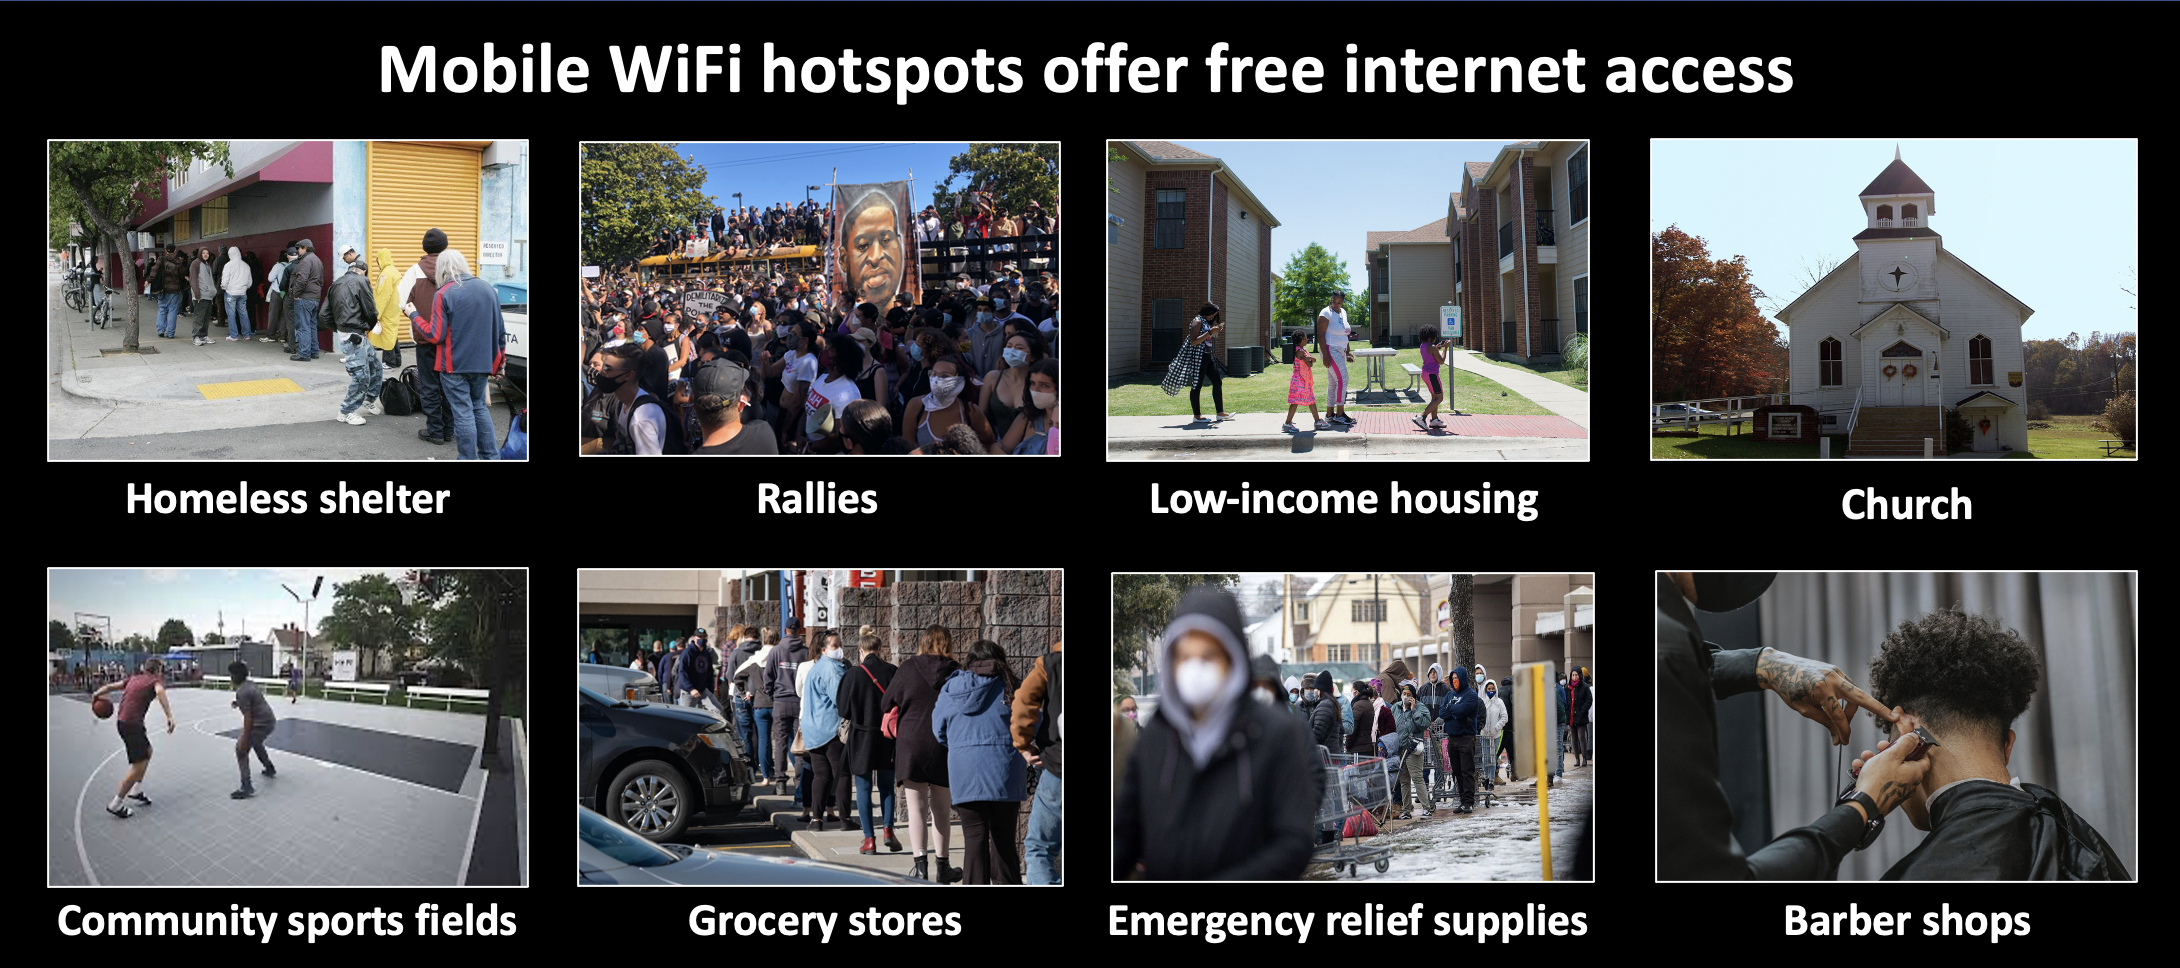 Mobile WiFi hotspots let organizers contact hard to reach communities.